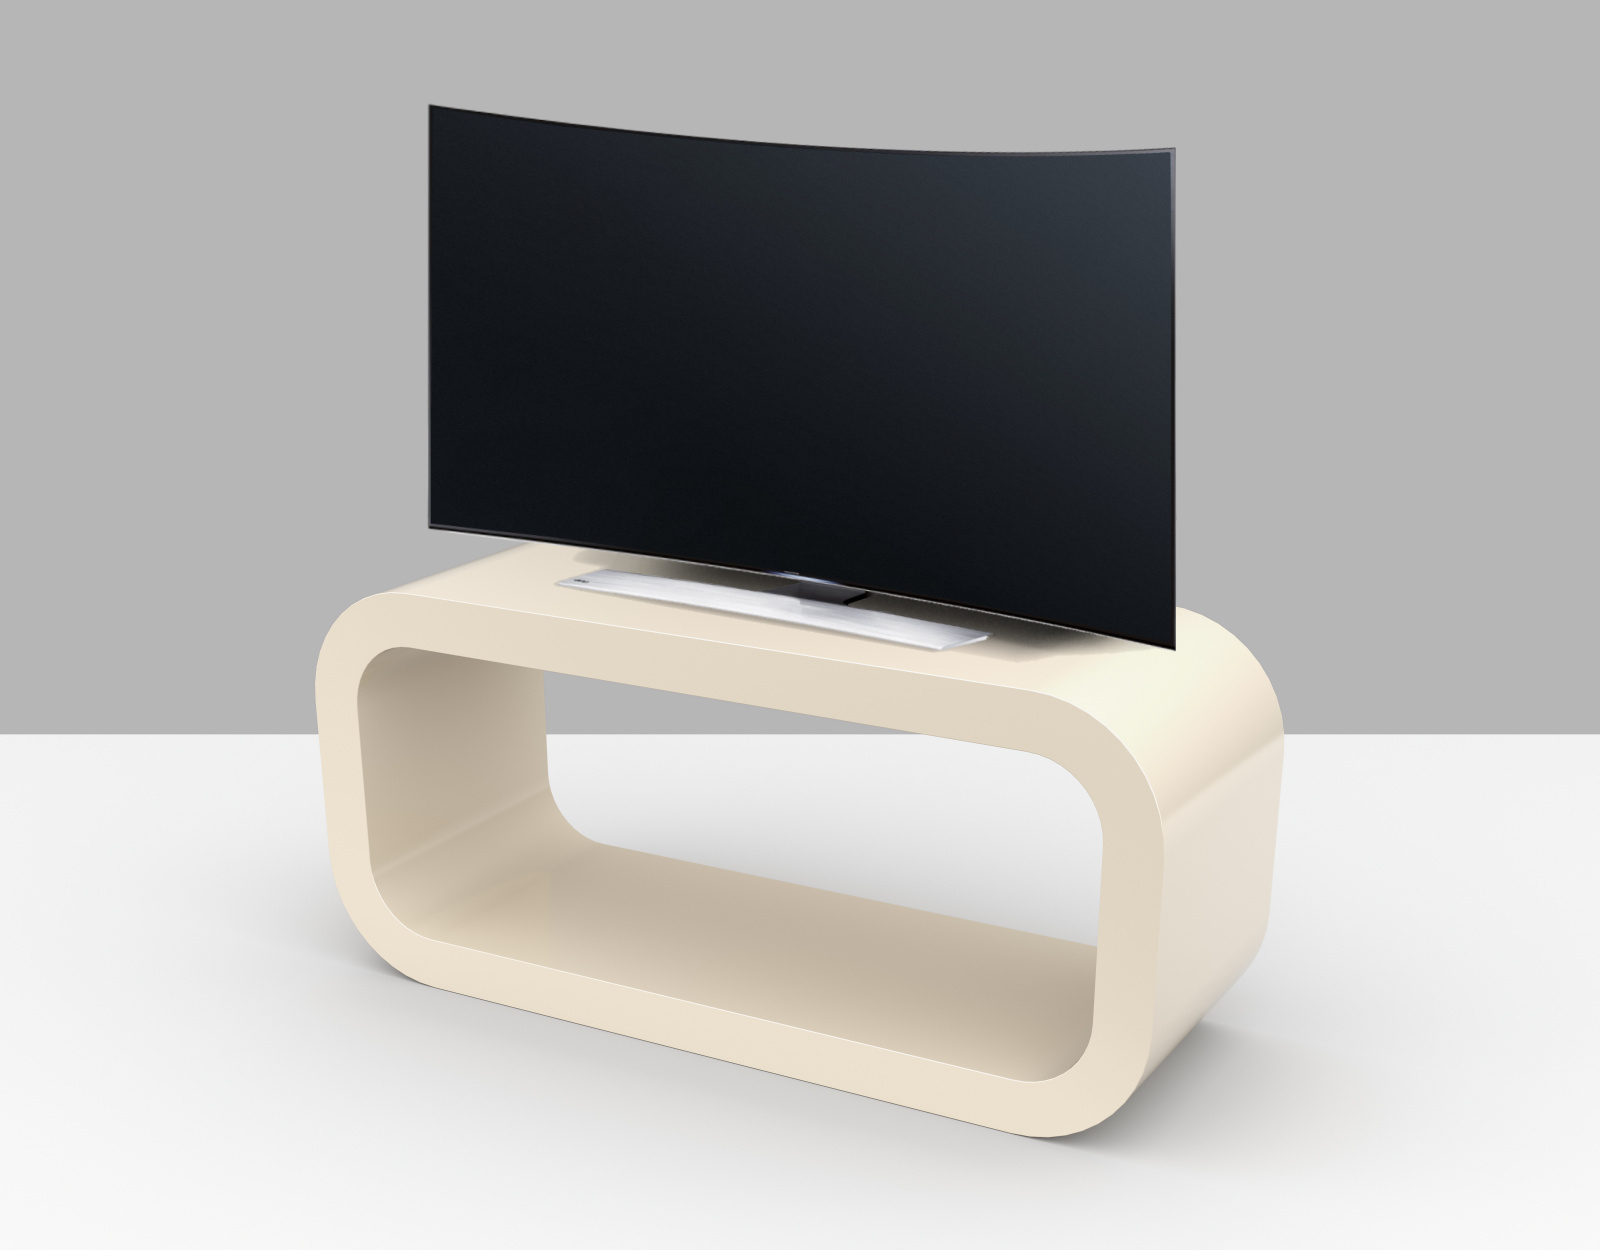 Cream Gloss Tv Stands With Regard To 2018 Cream Gloss Tv Stand – Hooptangle – Zespoke (View 6 of 20)